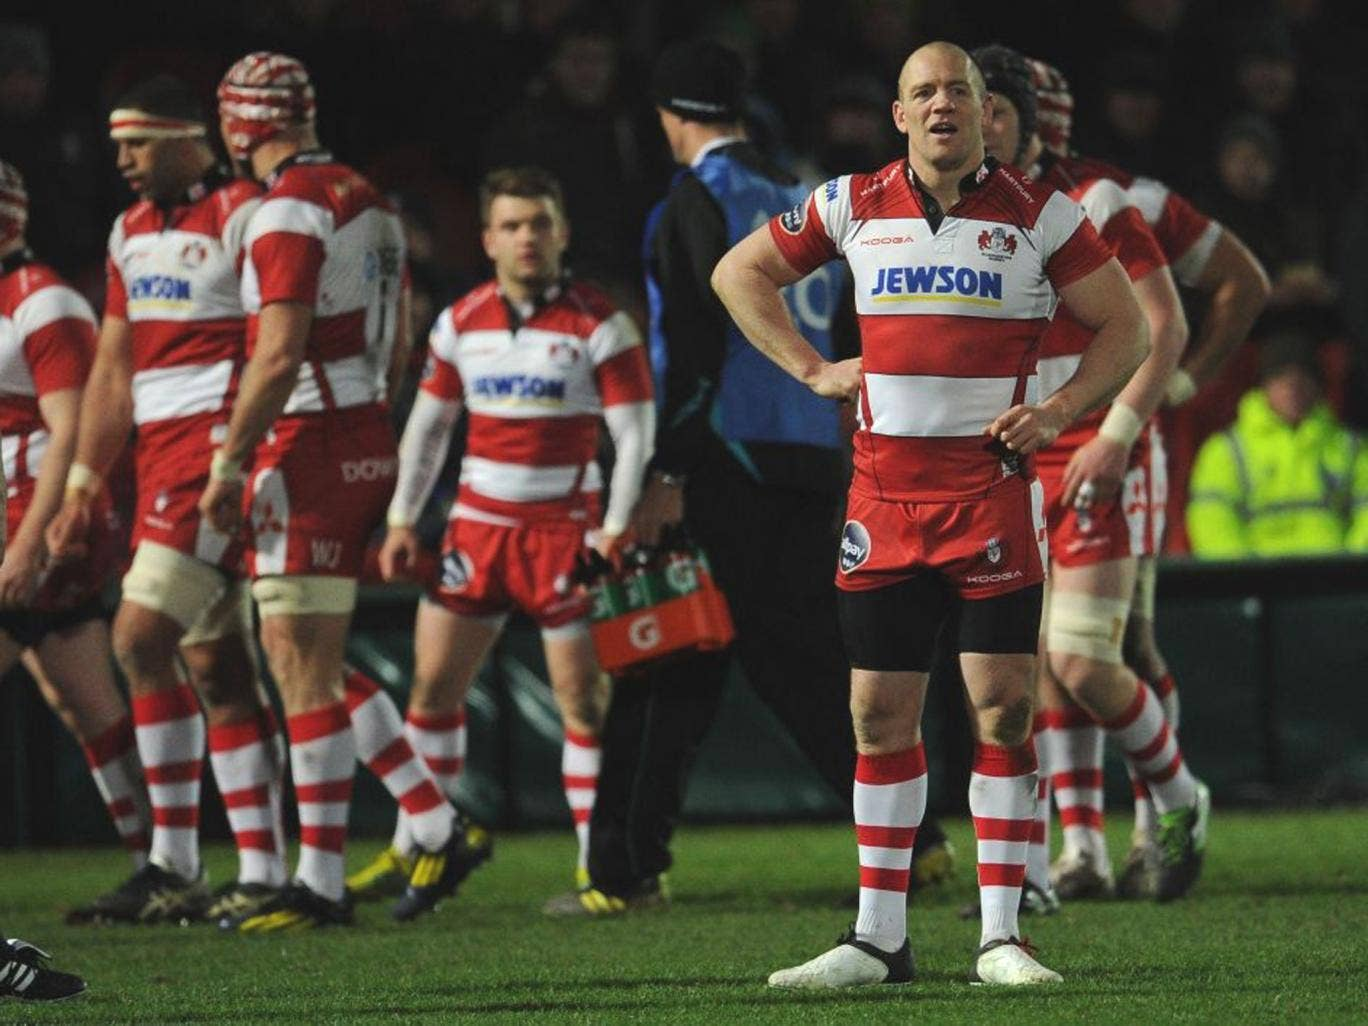 Mike Tindall ended up dejected despite scoring an early try